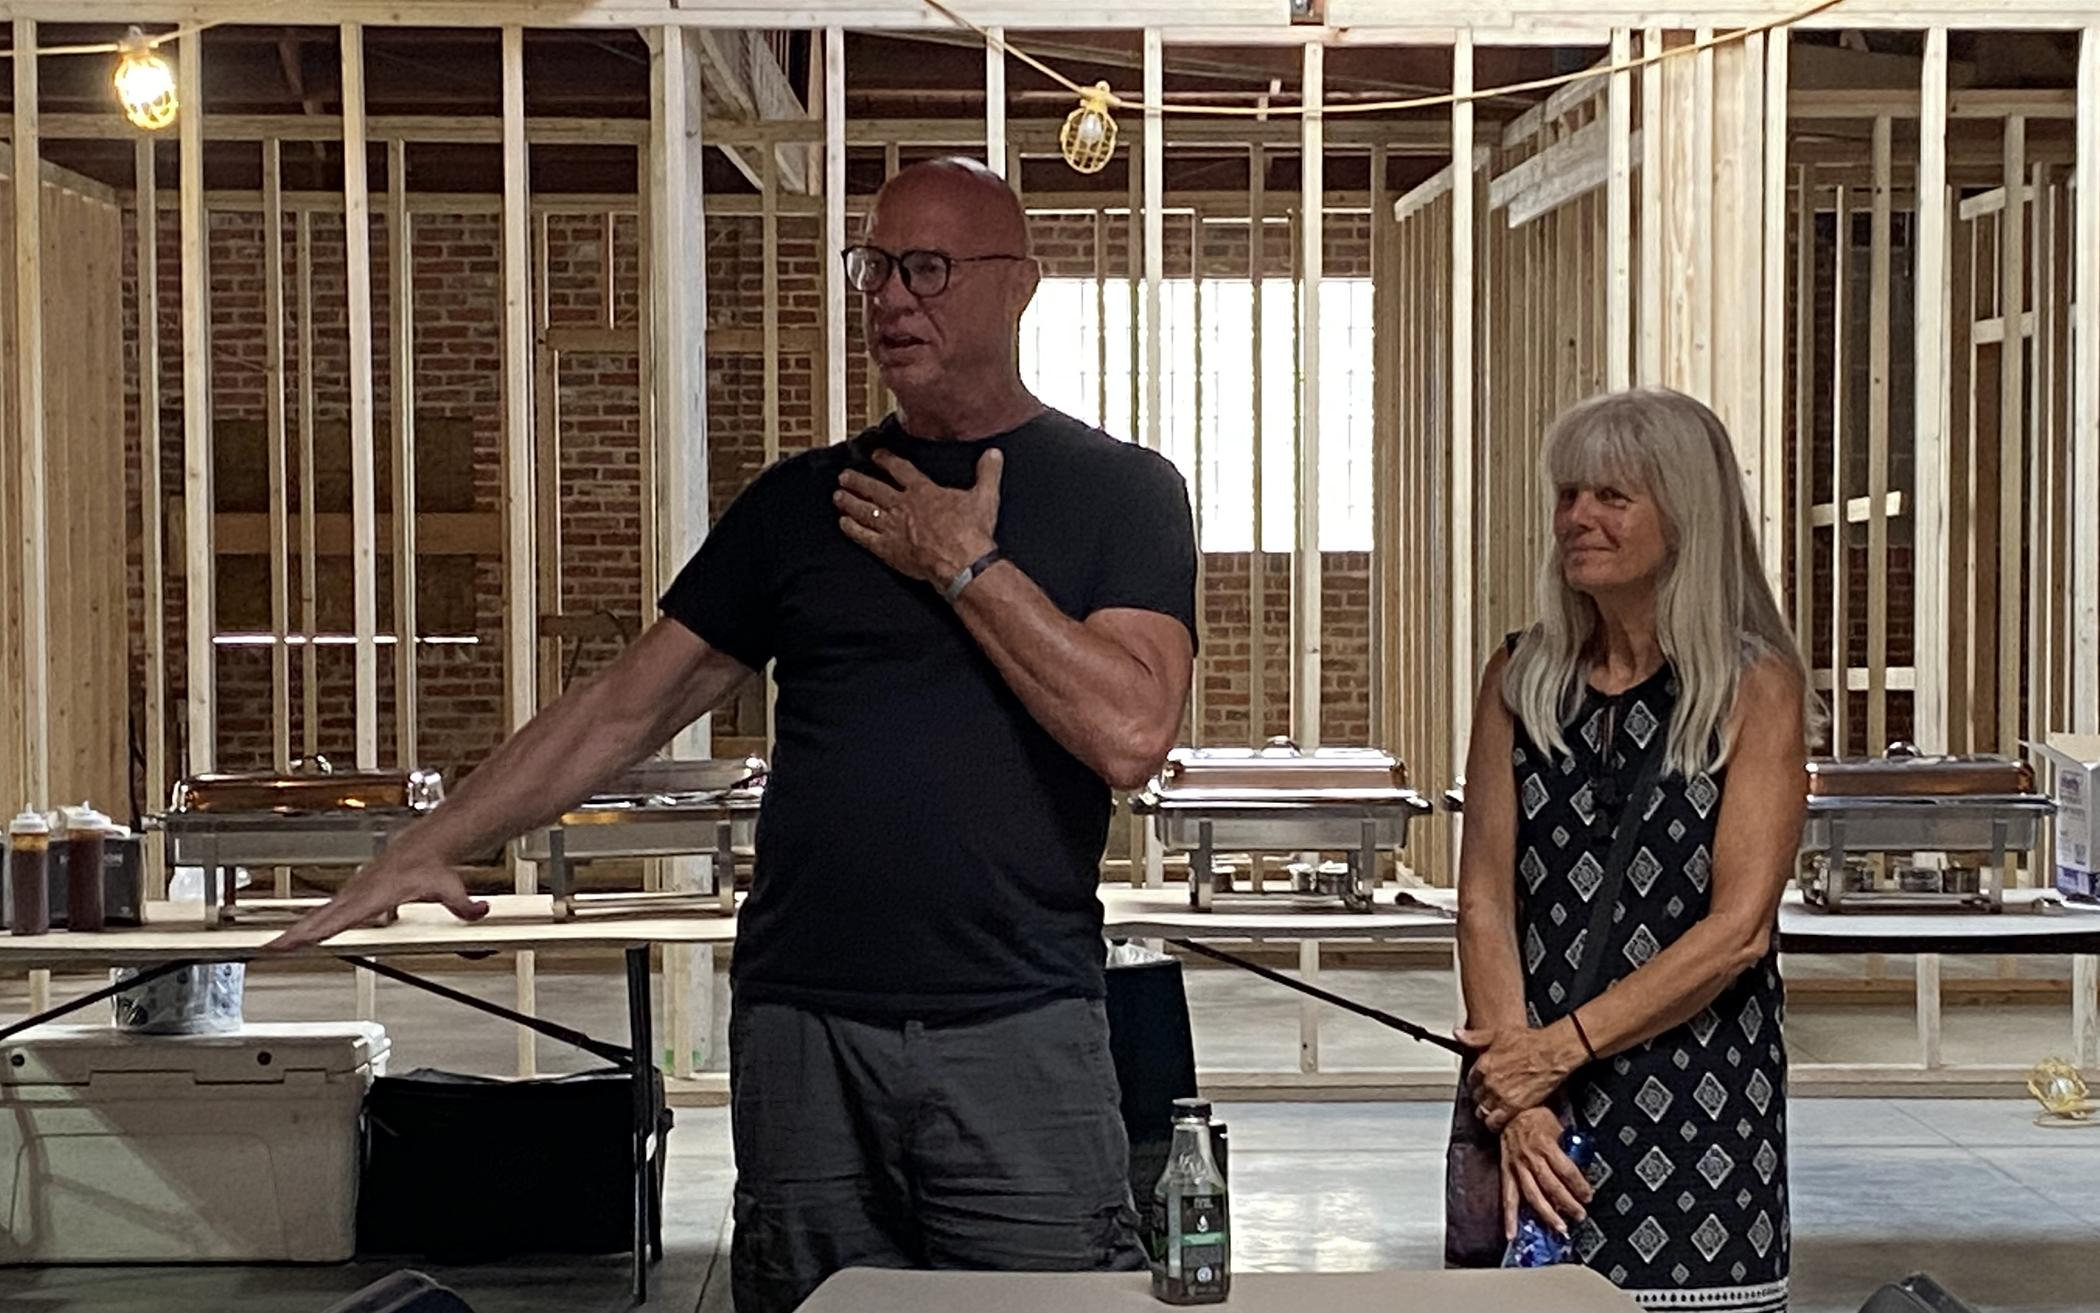 Permanent Home for Colorado Street Ministry Nearing Completion